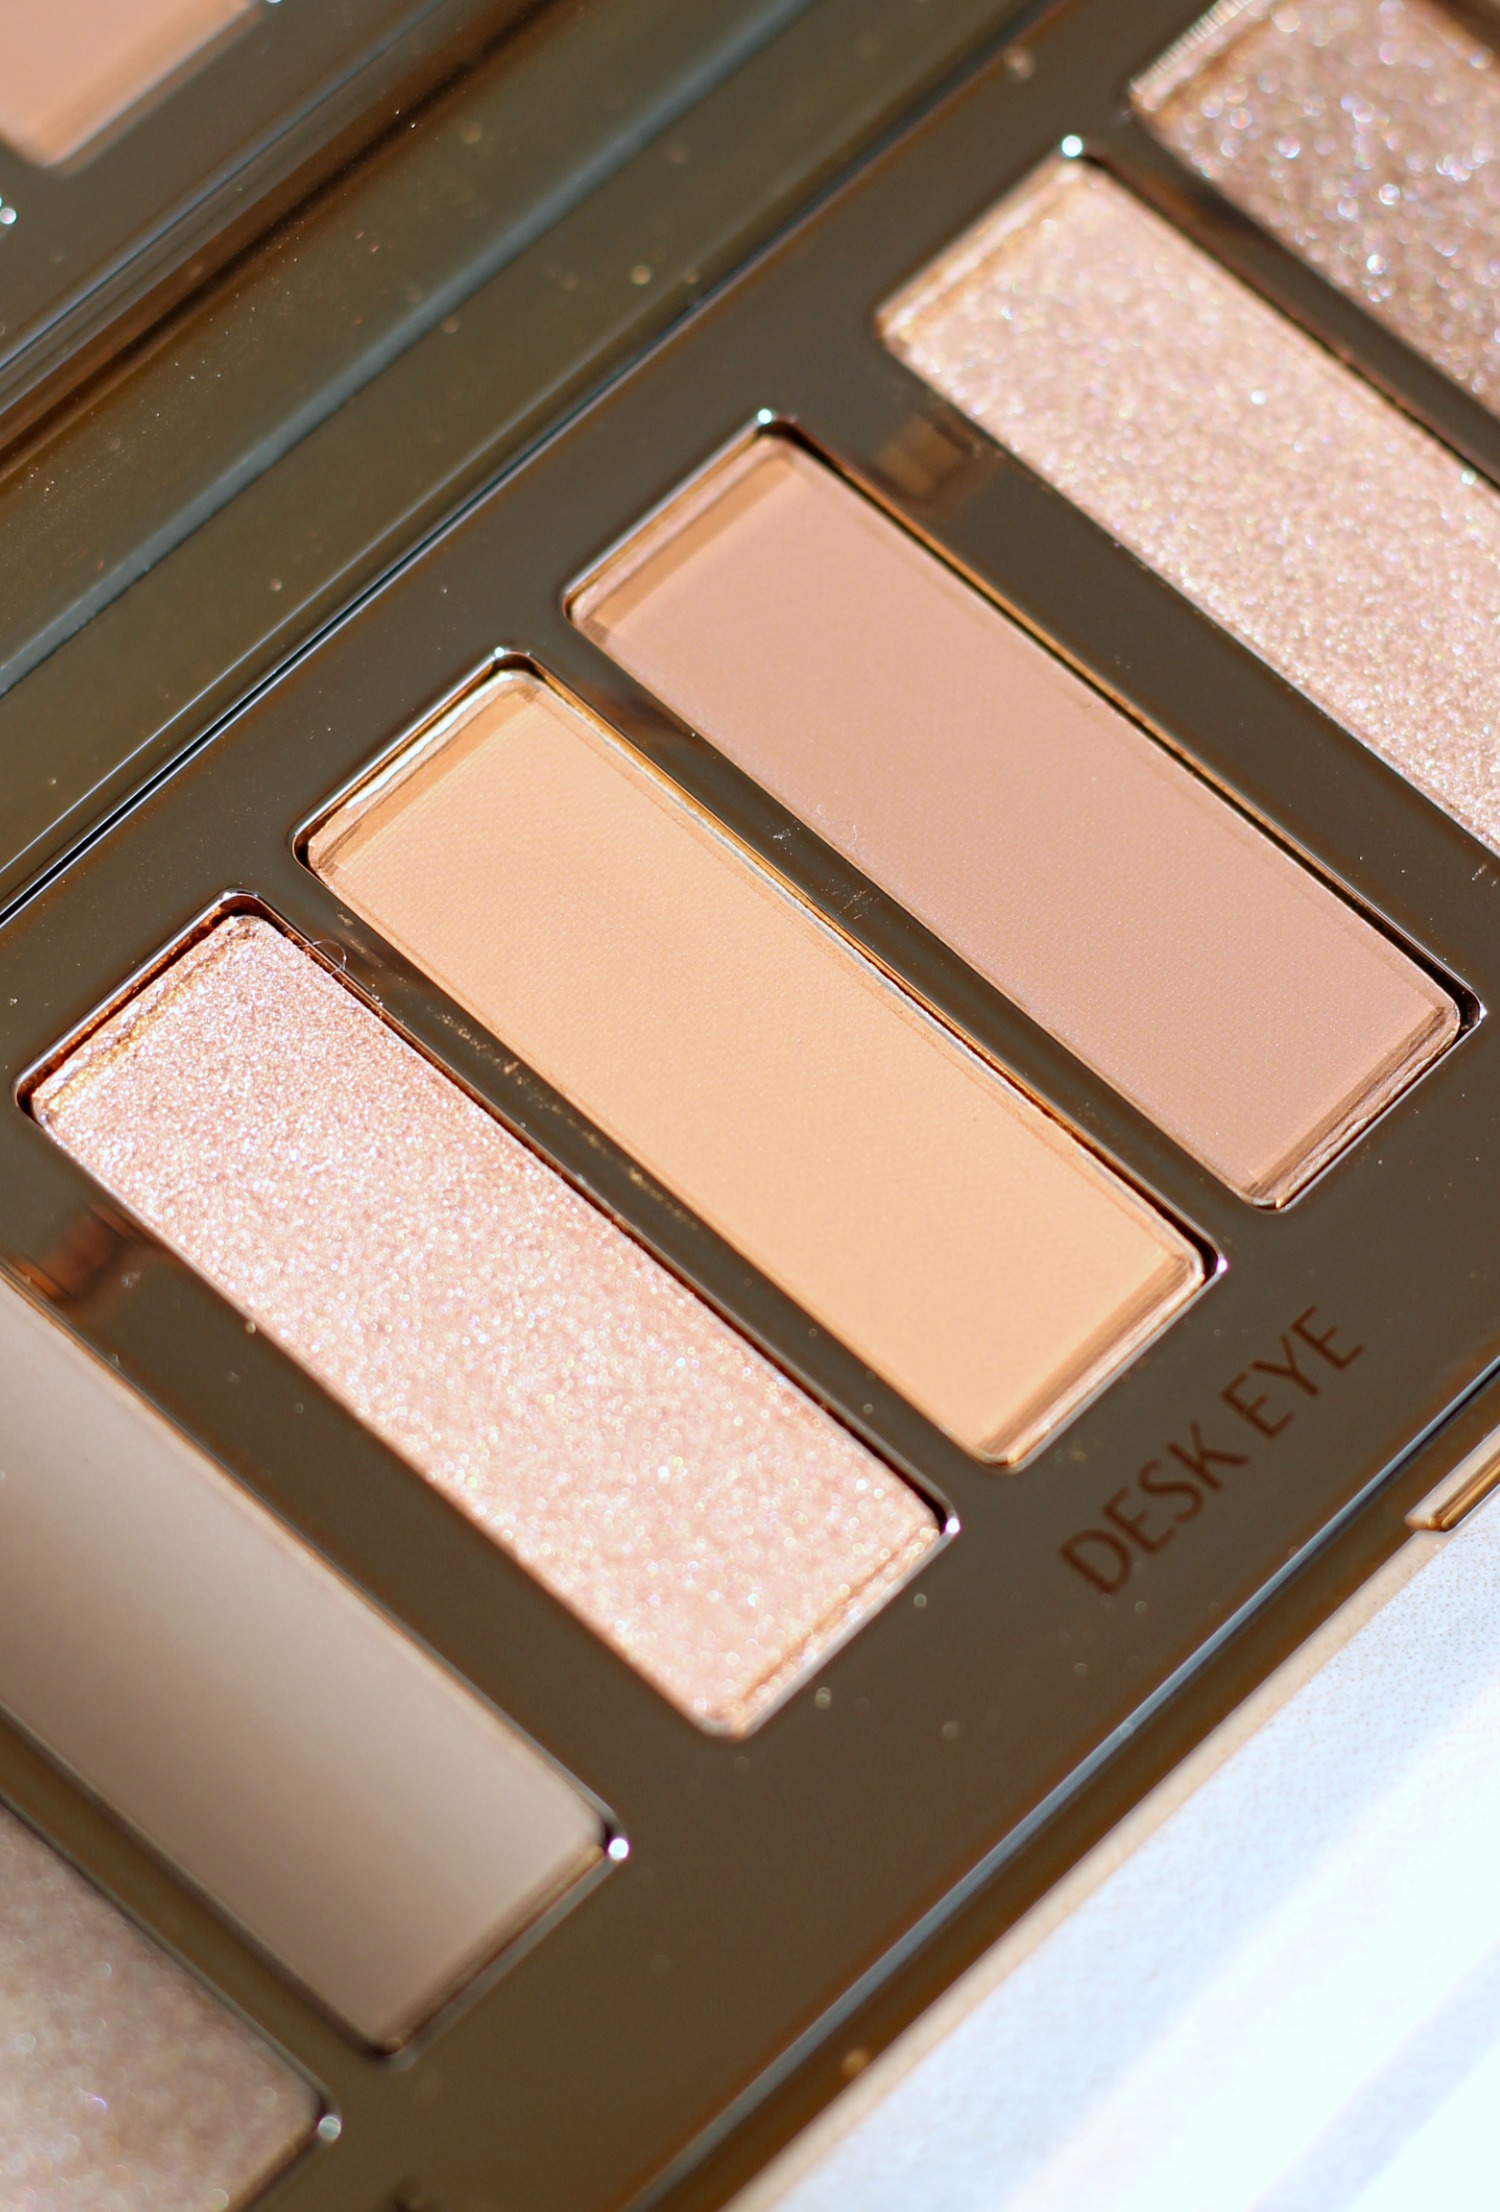 Charlotte Tilbury Instant Eye Palette Review | Close Up Desk Eye